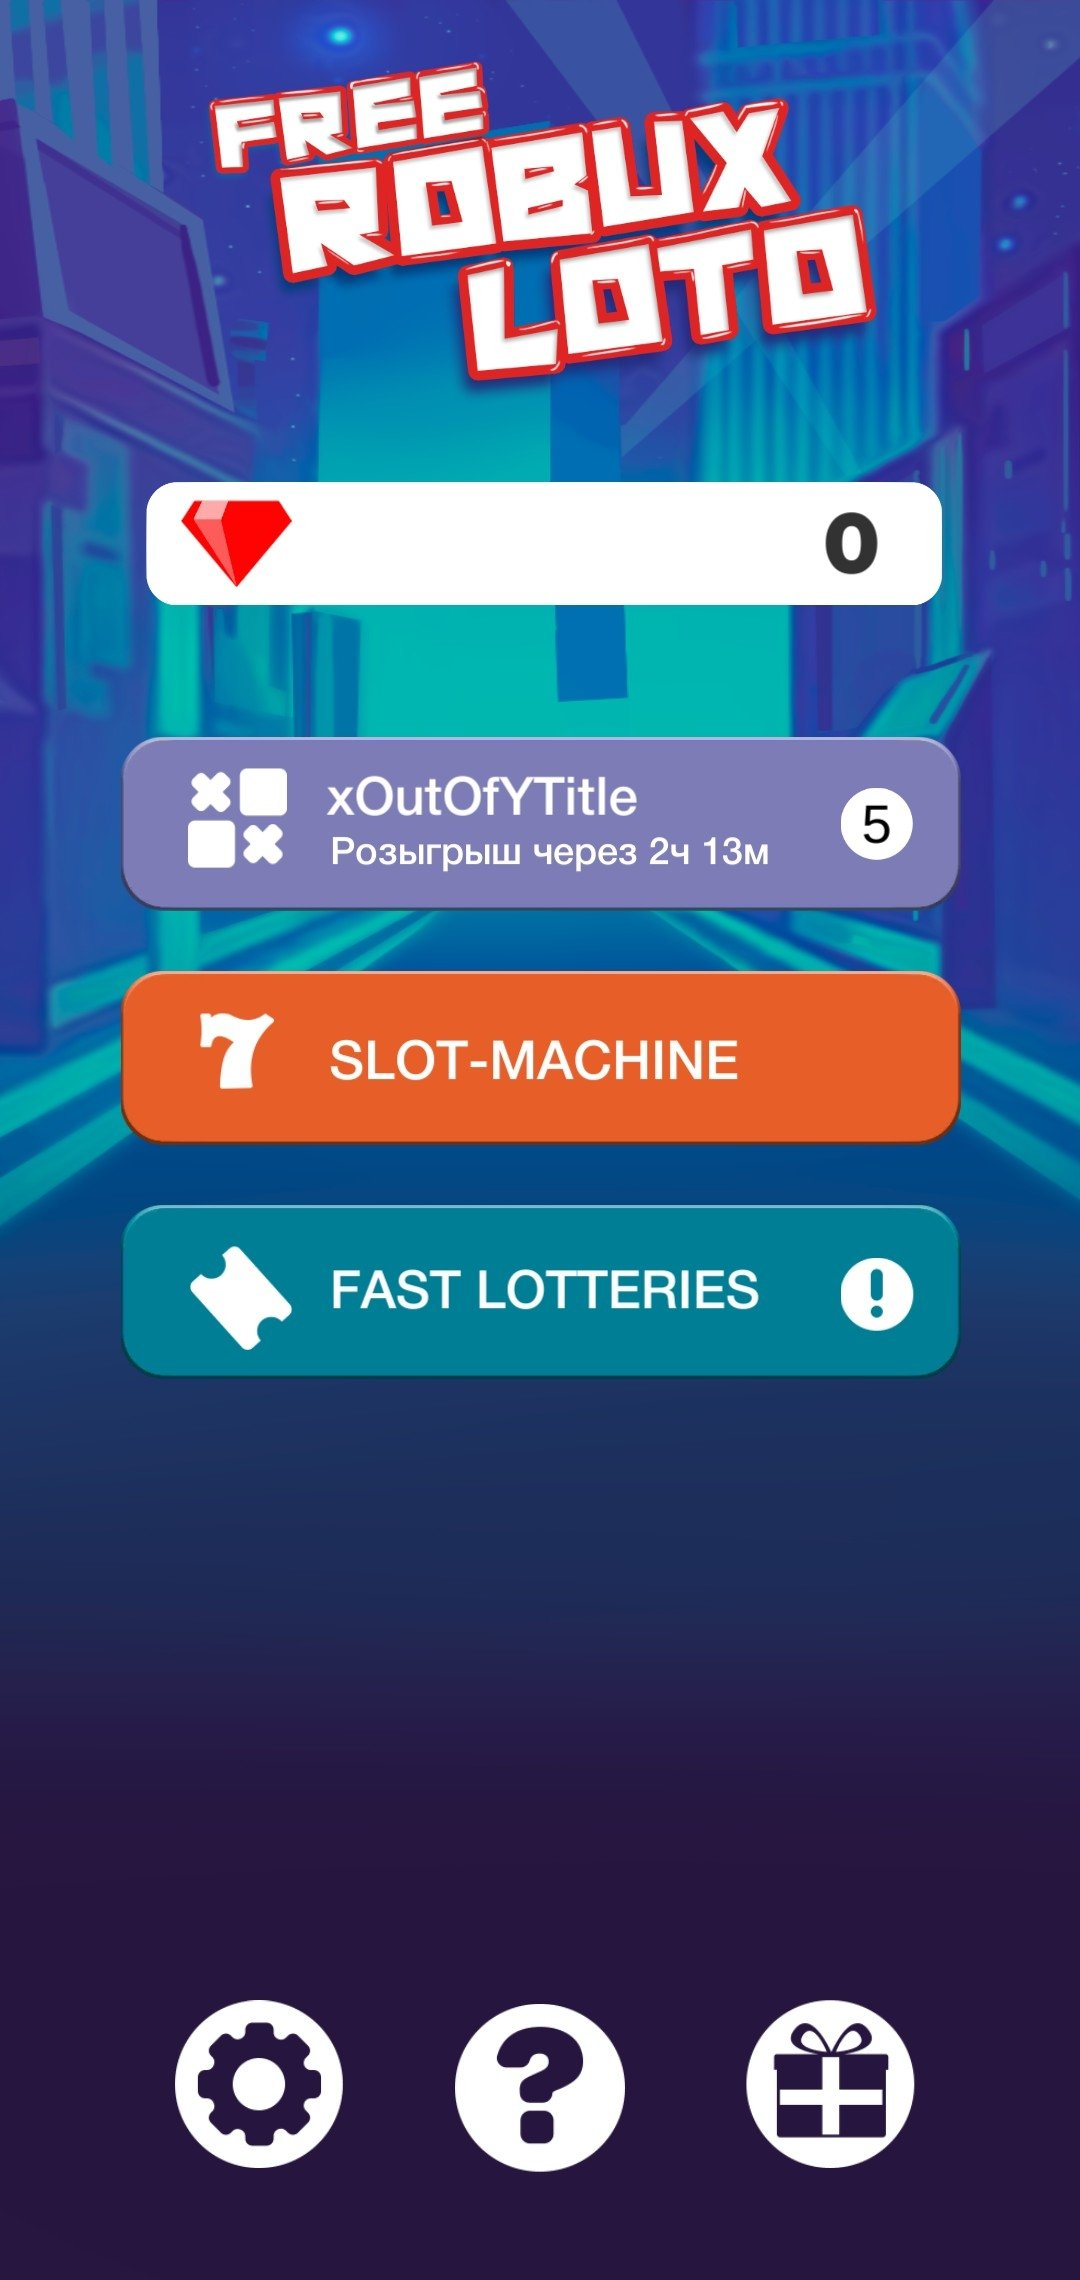 Free Robux Loto 1 15 Download For Android Apk Free